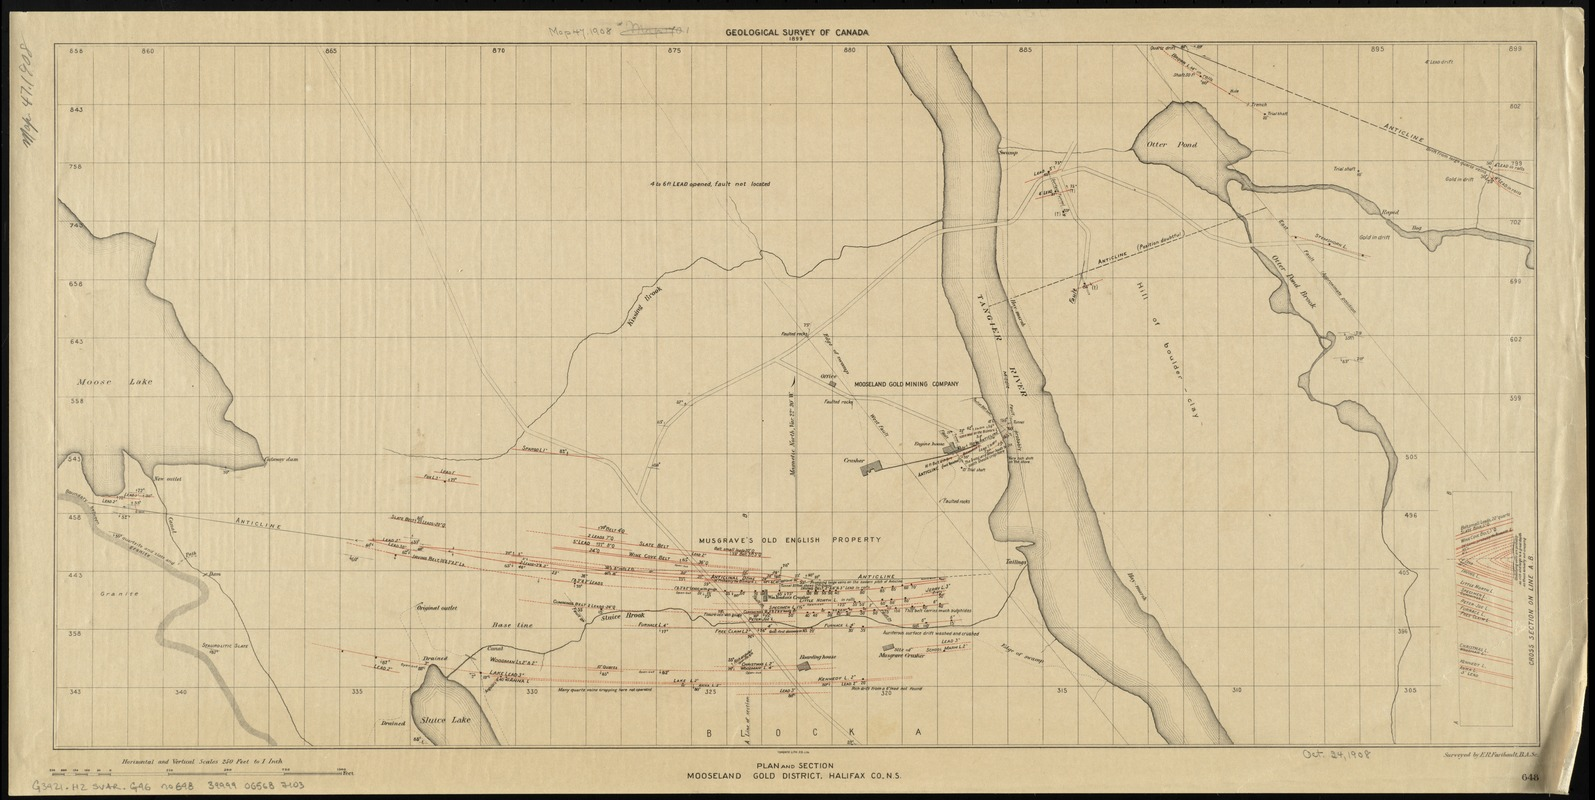 Plan and section, Mooseland gold district, Halifax co., N.S